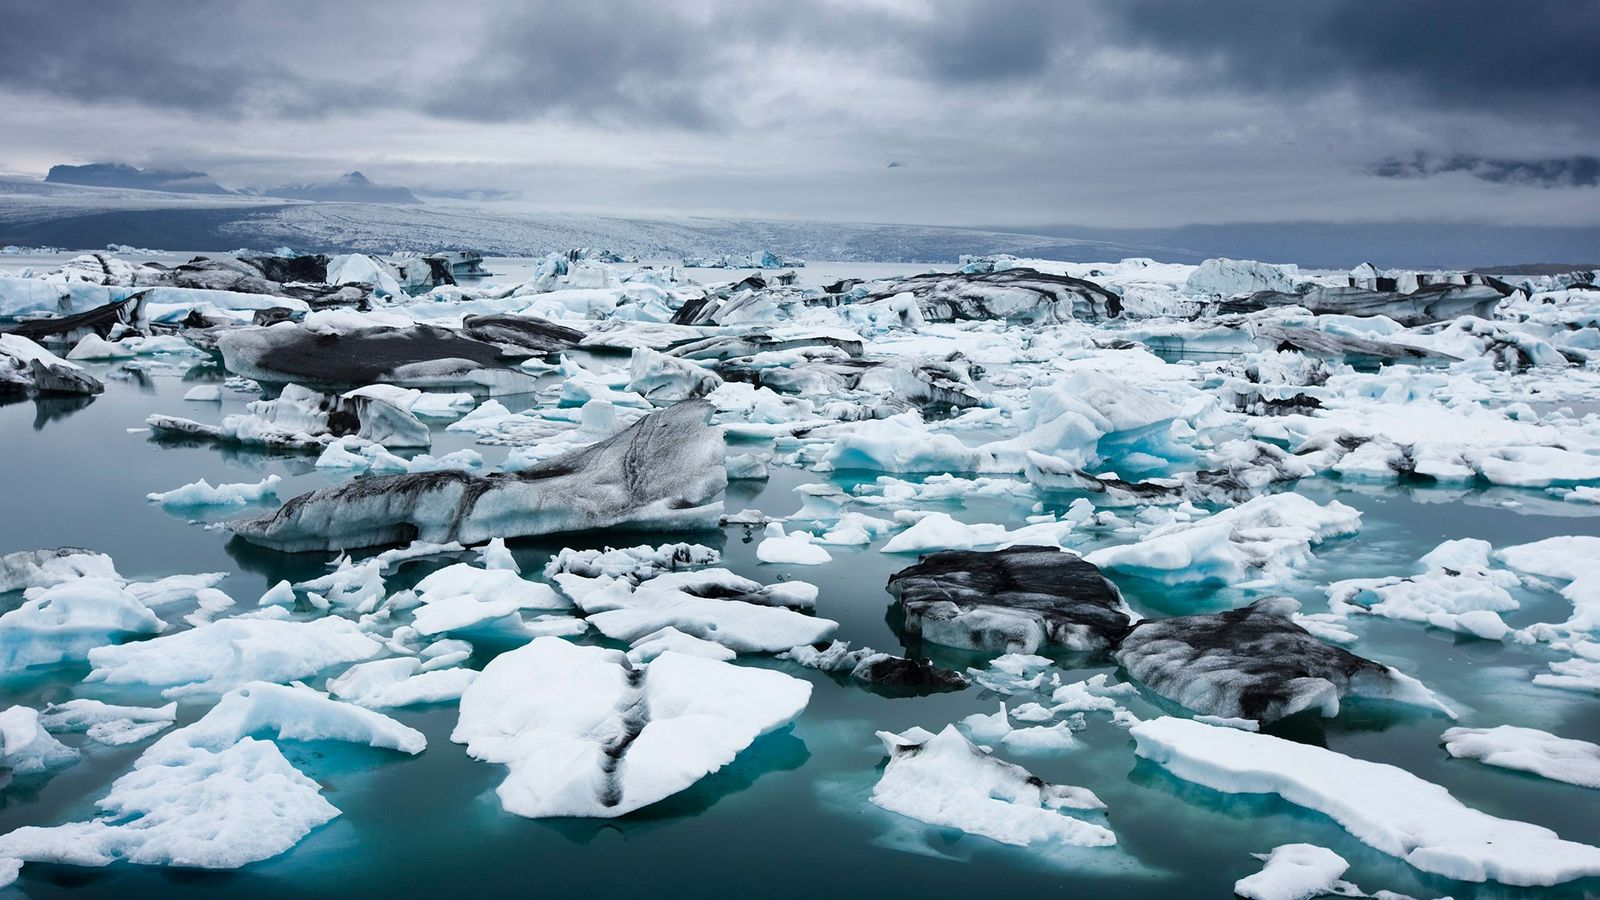 Iceland's glacier Breiðamerkurjökull is melting. And local people stand to lose more than some even know.